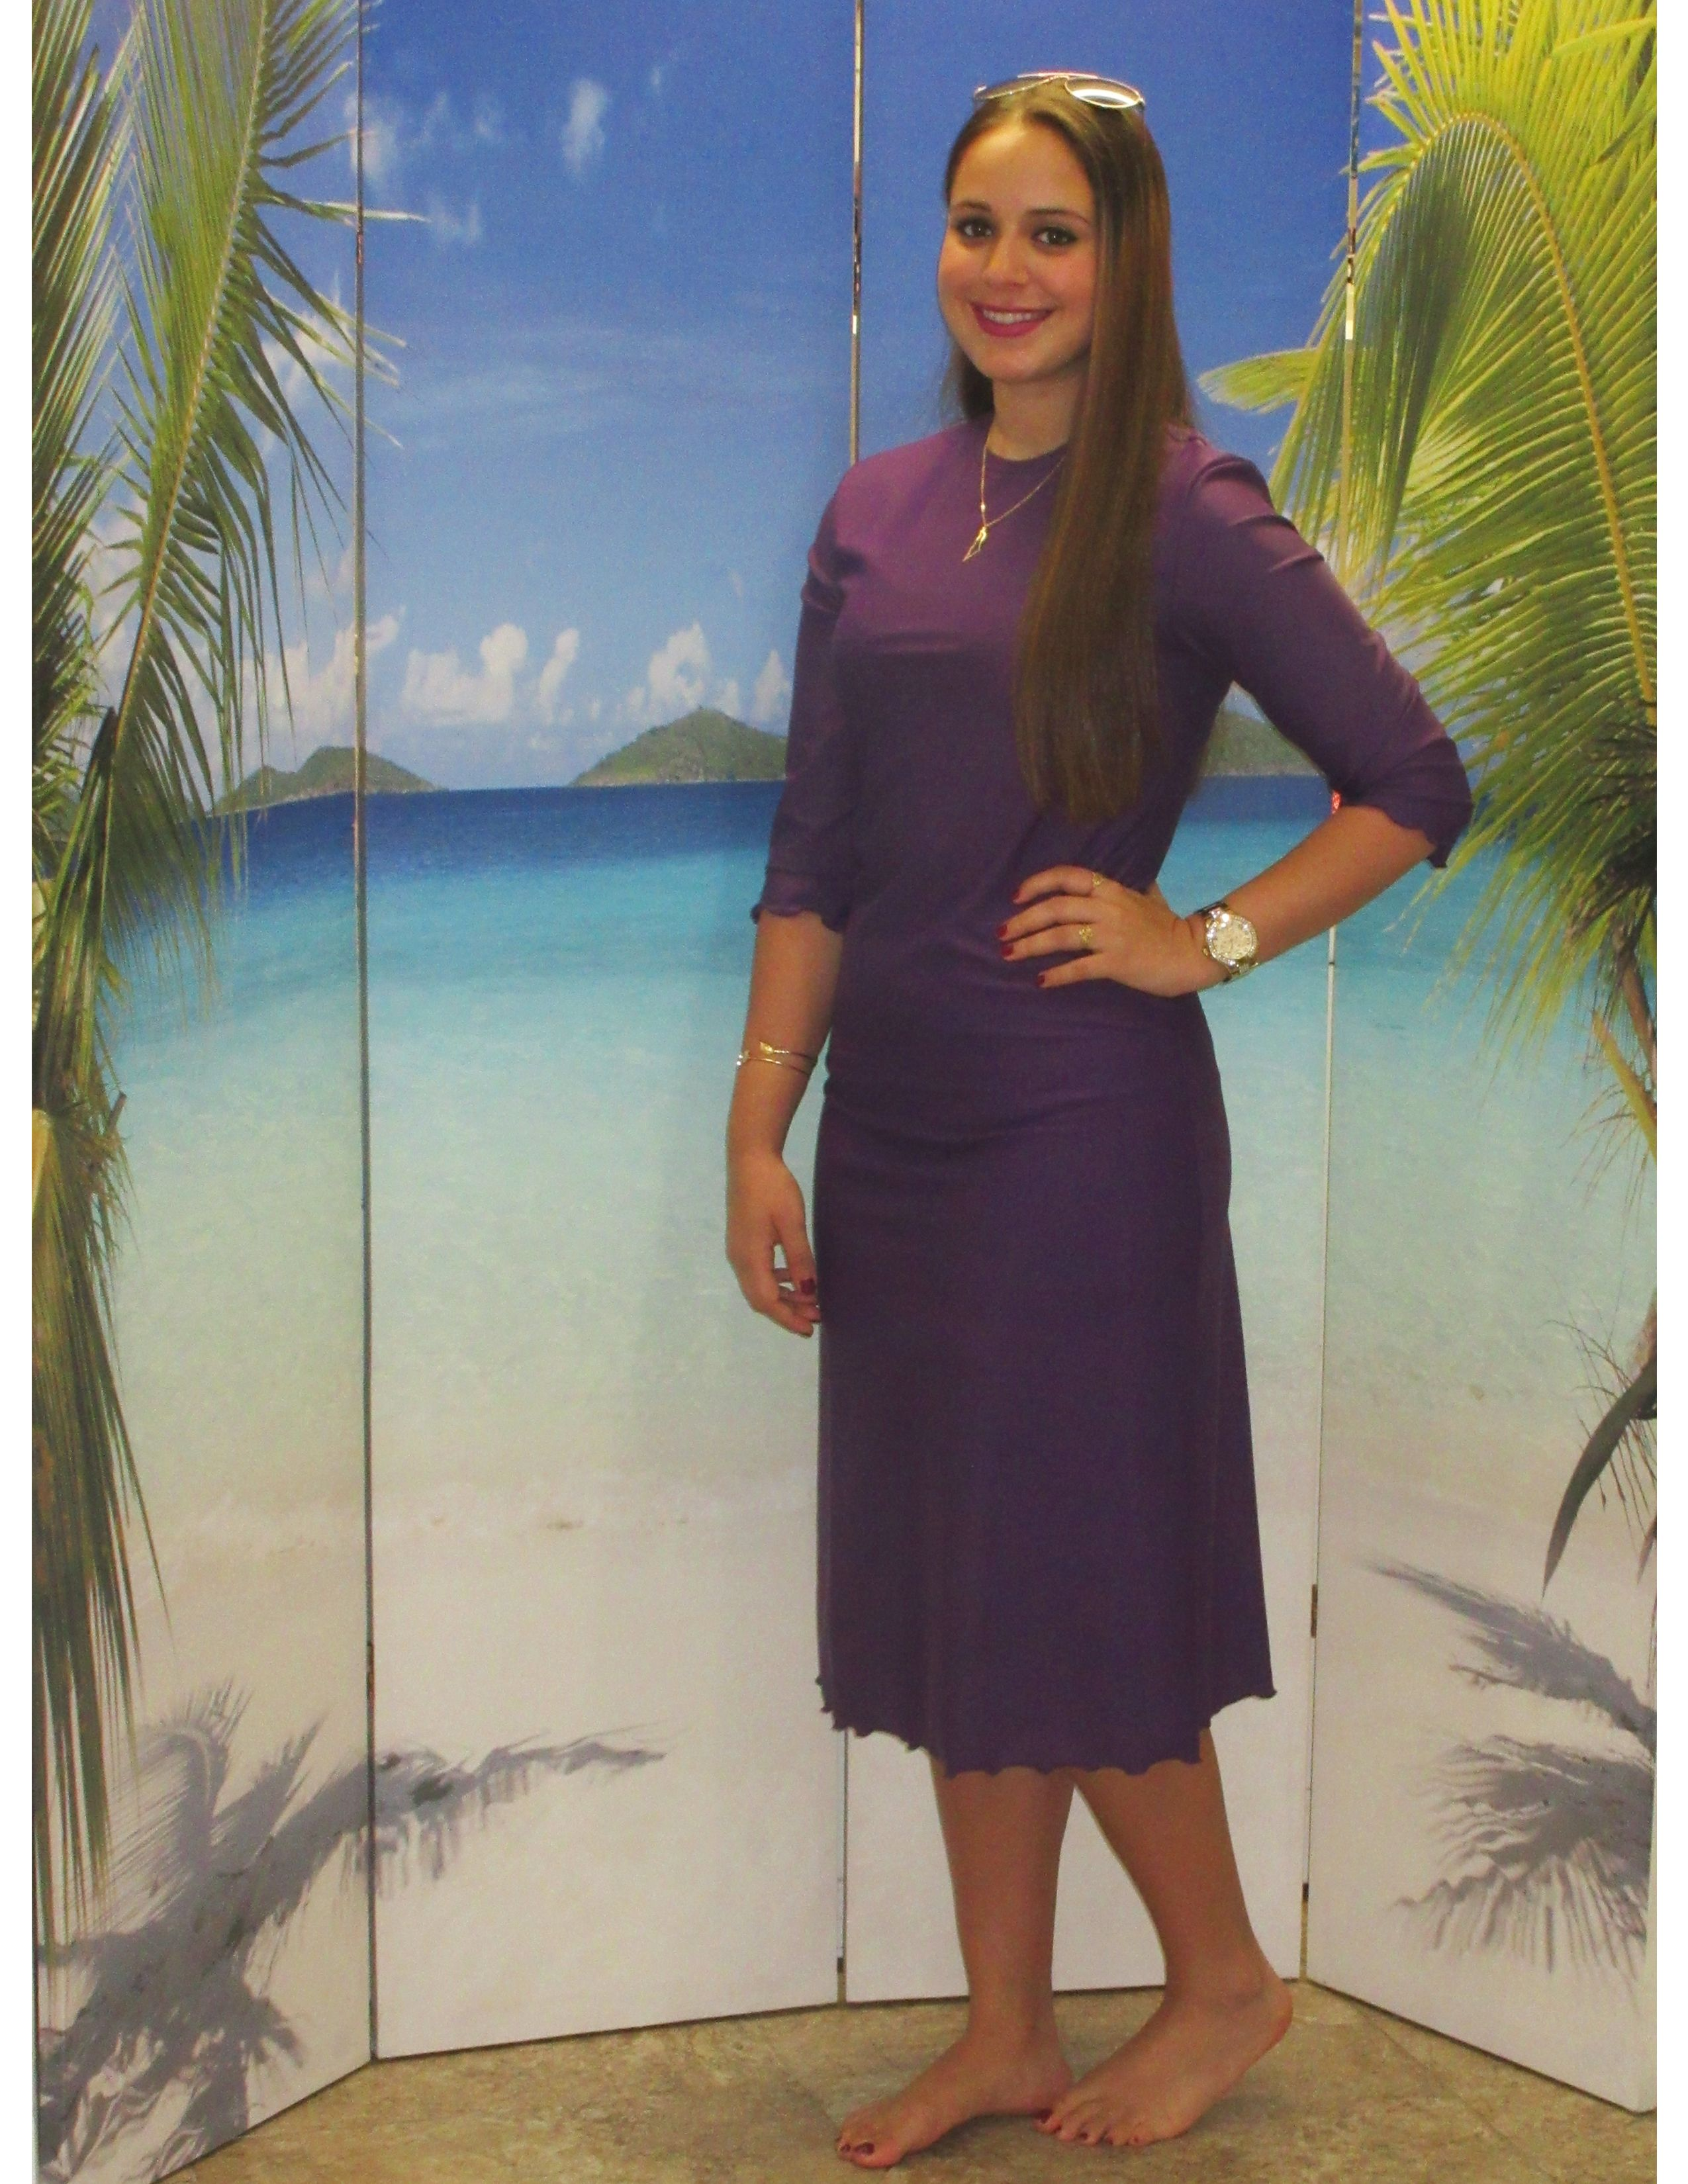 545e337b6dc6b Just in at Aqua Modesta swimwear. style 2600A-1 in violet. Simply elegance  in the popular A-line swim dress for ladies.